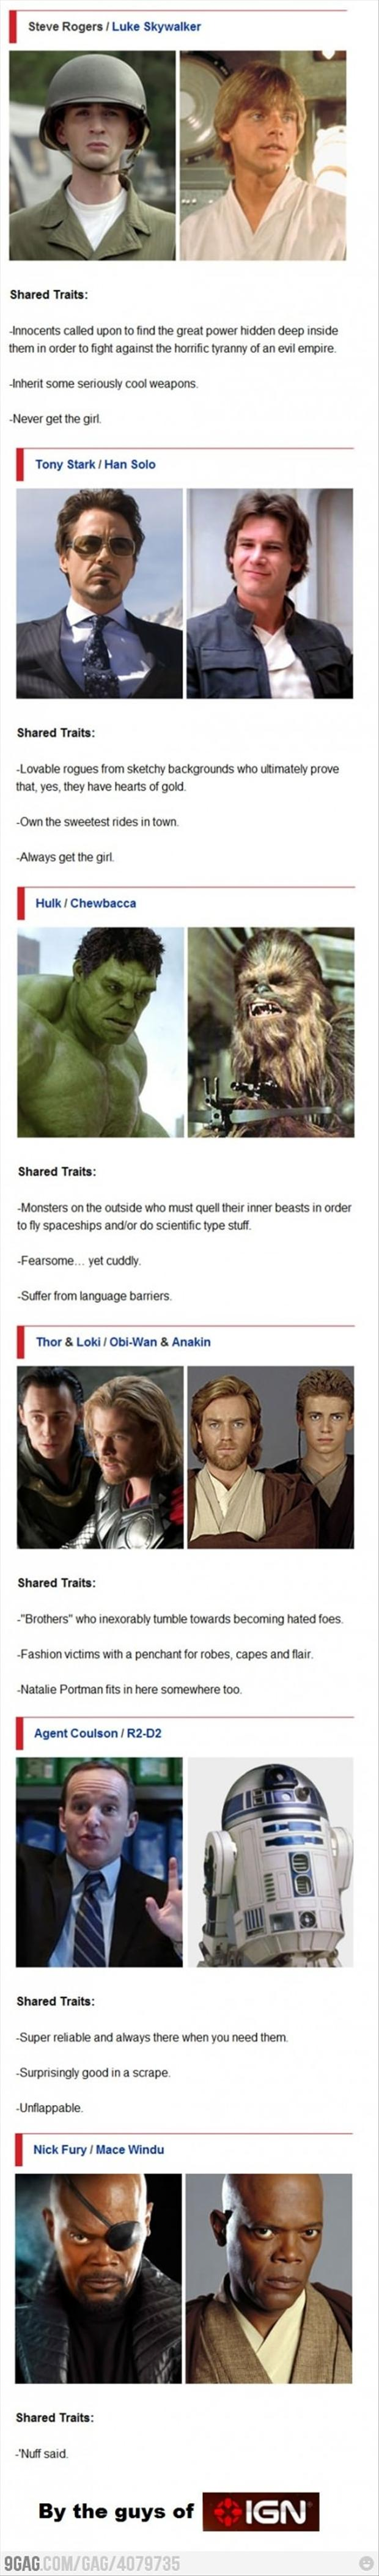 The Avengers and Star Wars. Okay, I love this, but for Steve and Luke, Luke never gets the girl but Steve a) gets his girl in The First Avenger, and b) after that doesn't want a girl anyway! And Stark already has a girl, it's not like he's competing for one.